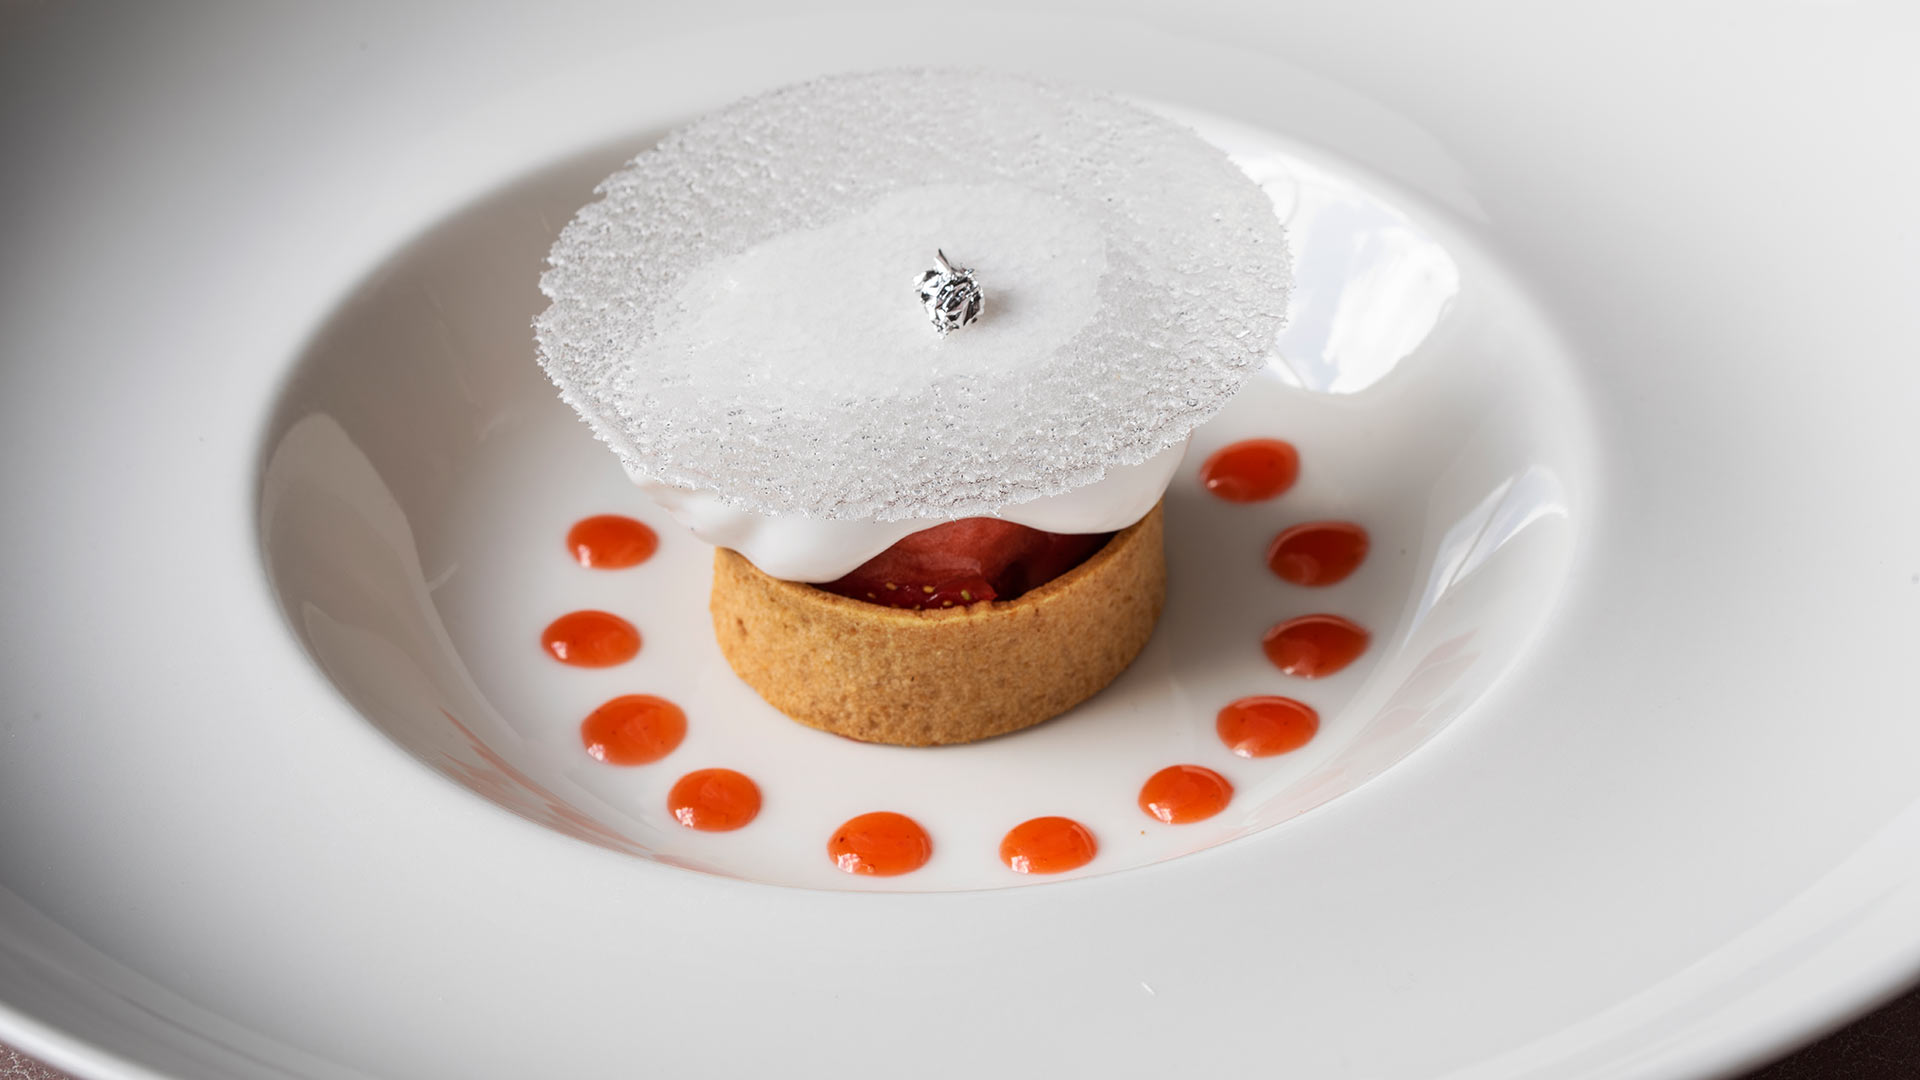 Strawberry-and-coconut-tart-opaline-and-sorbet-1920x1080